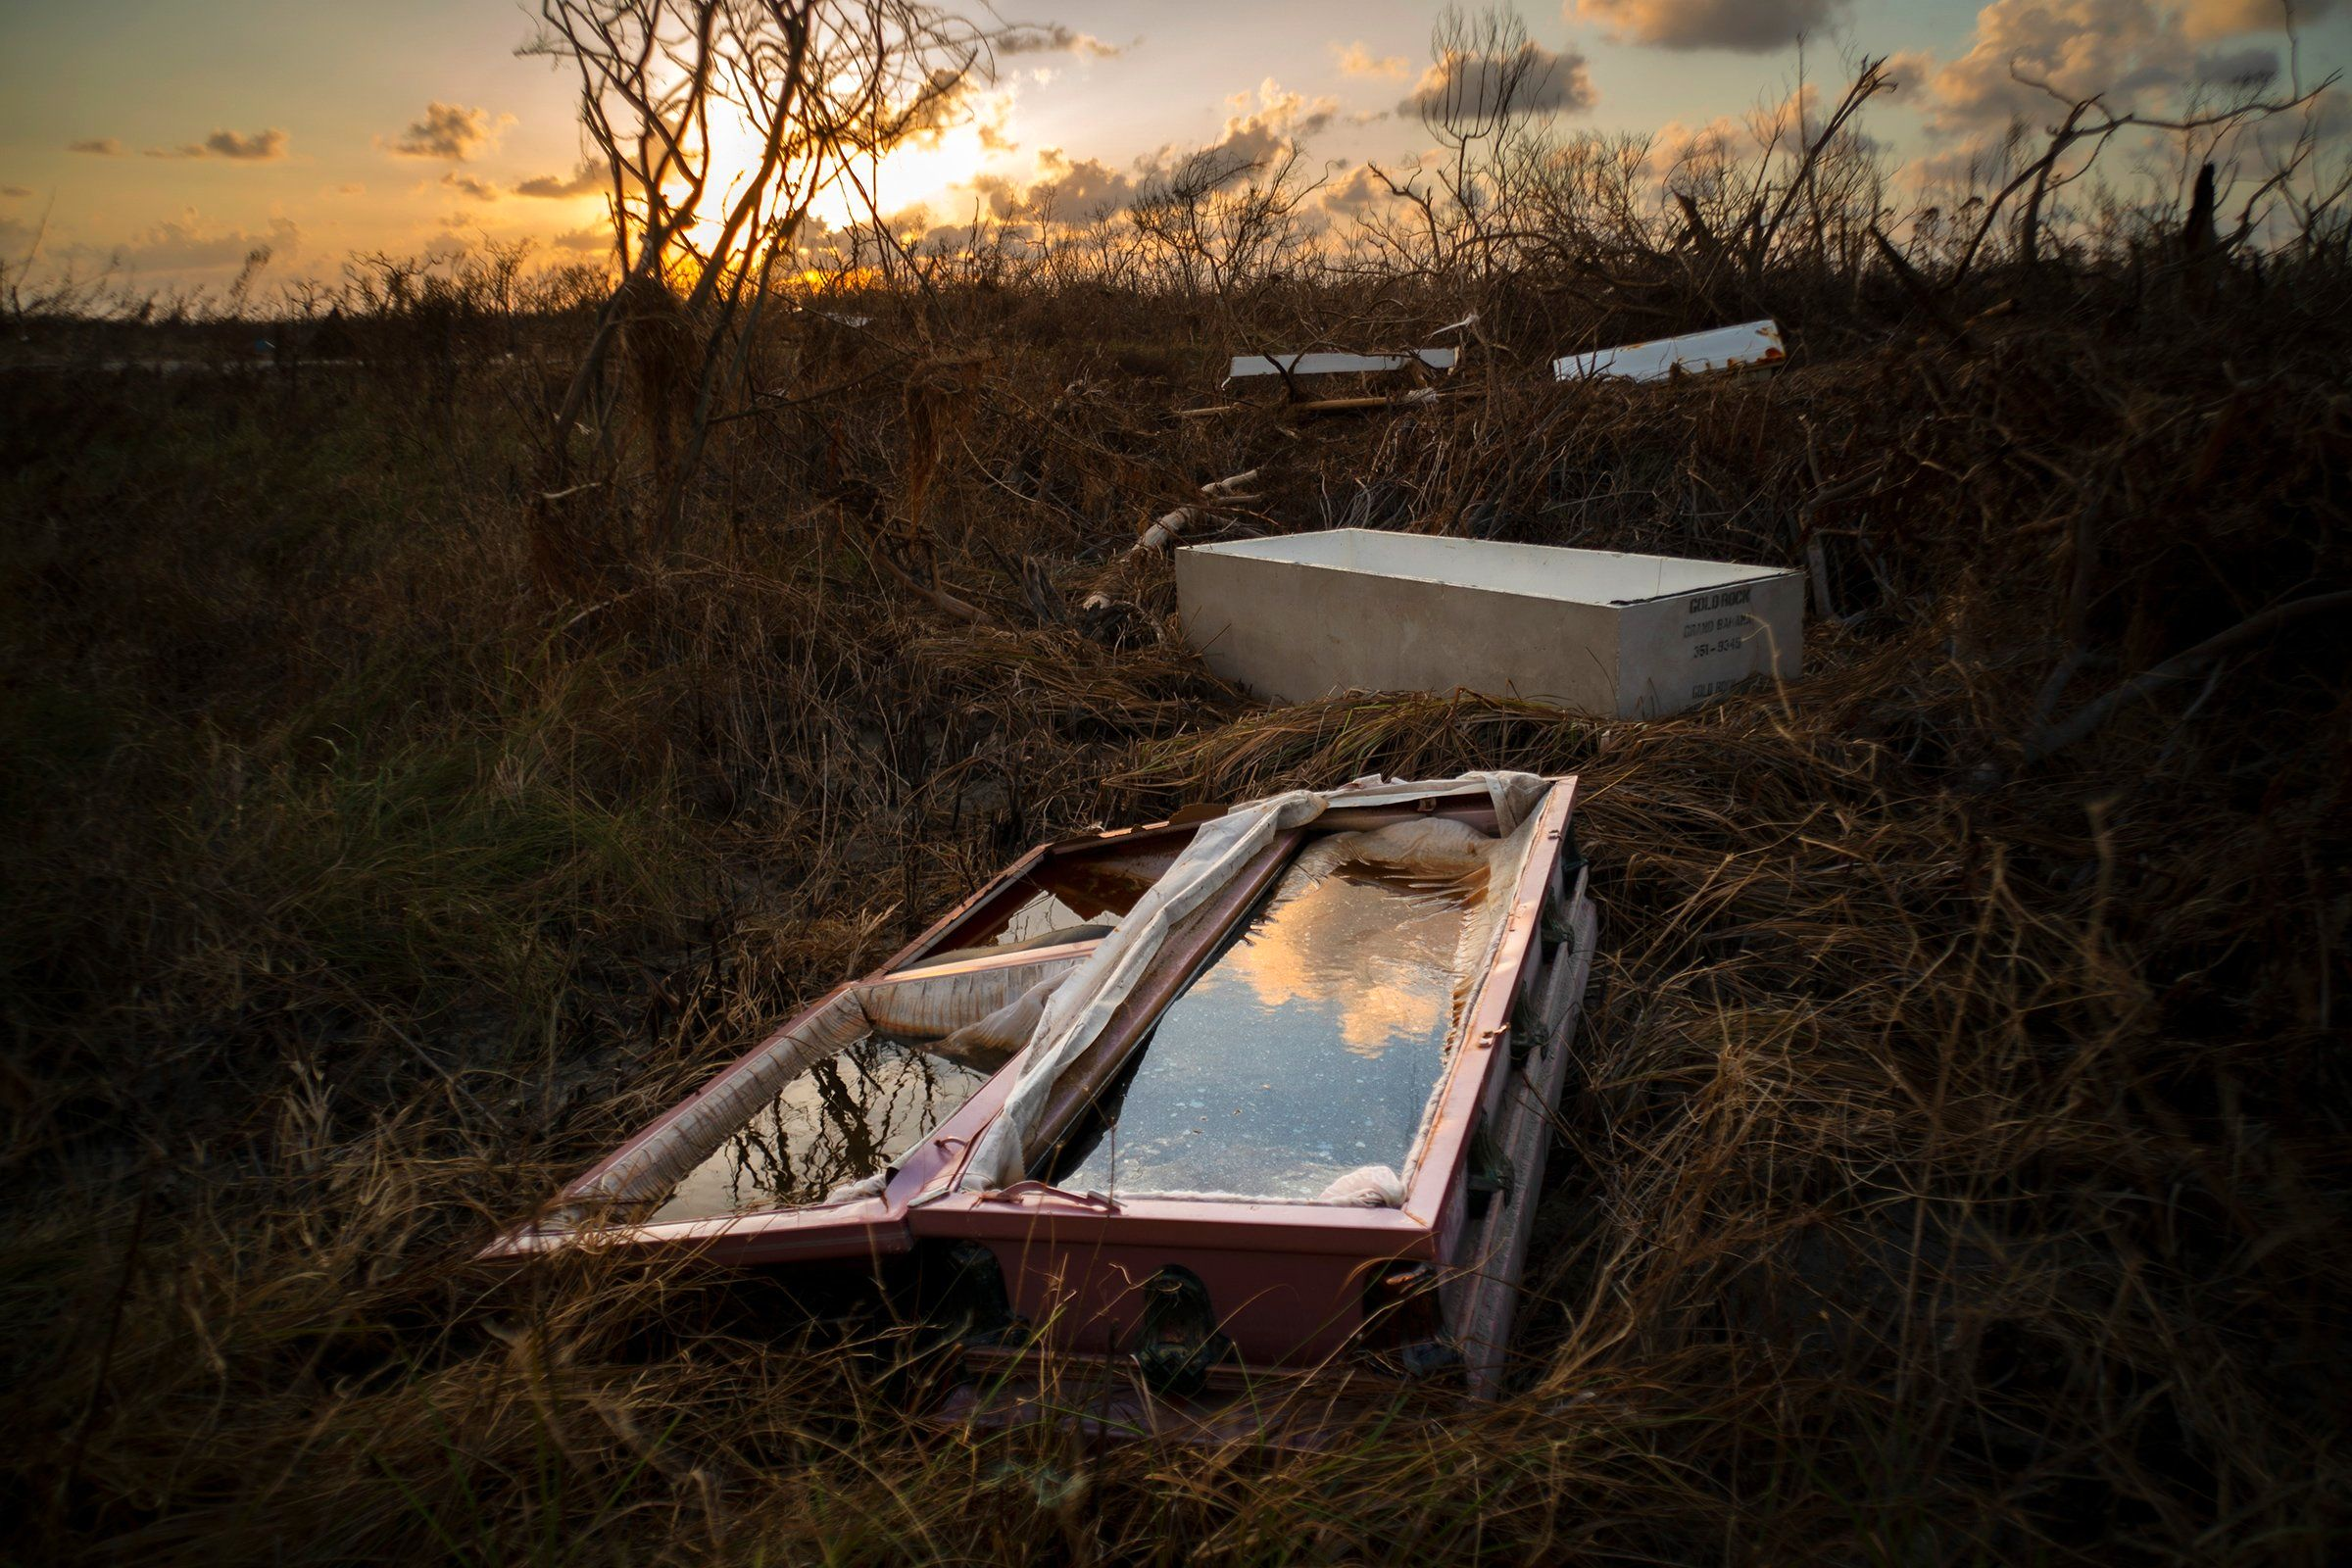 When Hurricane Dorian tore into the Bahamas in September, it settled in. Forecasters watched as the Category 5 storm hovered for days over Grand Bahama, with its winds reaching 185 m.p.h. and a storm surge 25 ft. high. Coffins, like this one at a cemetery in McLean's Town, were lifted out of the earth. The damage left behind was staggering, estimated at some $3.4 billion.